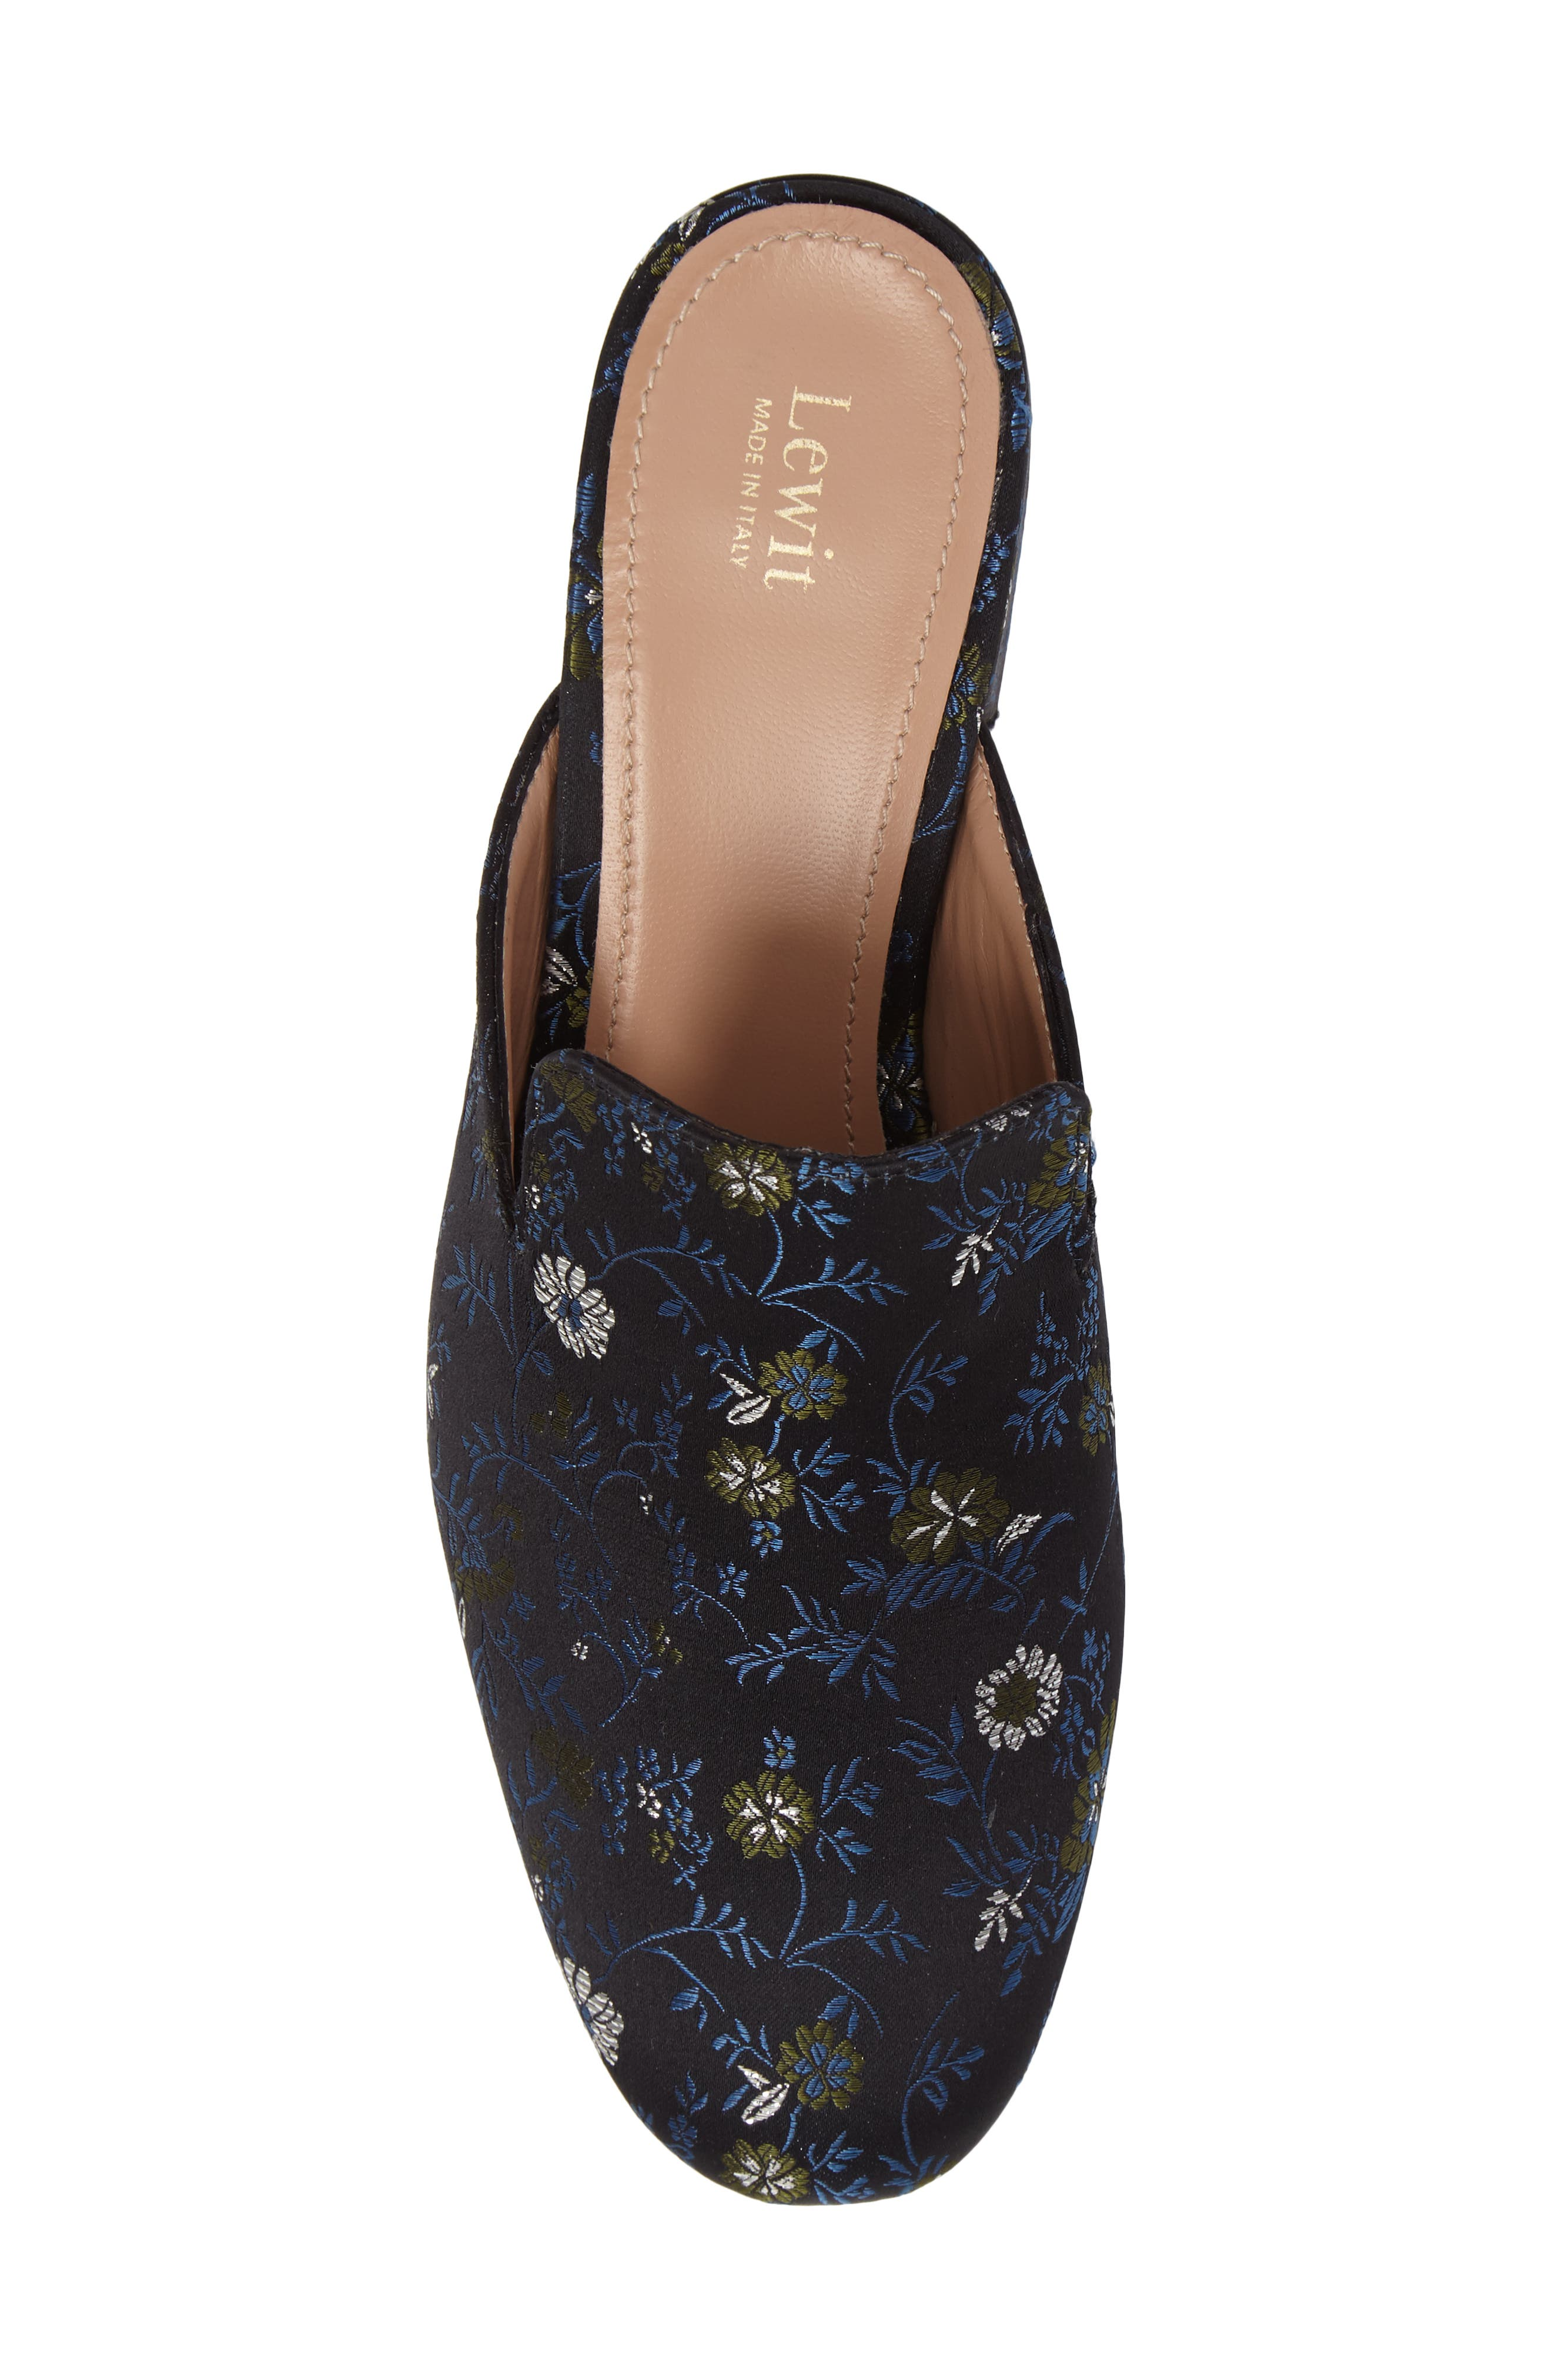 Bianca Embroidered Loafer Mule,                             Alternate thumbnail 4, color,                             Black/ Blue Floral Fabric